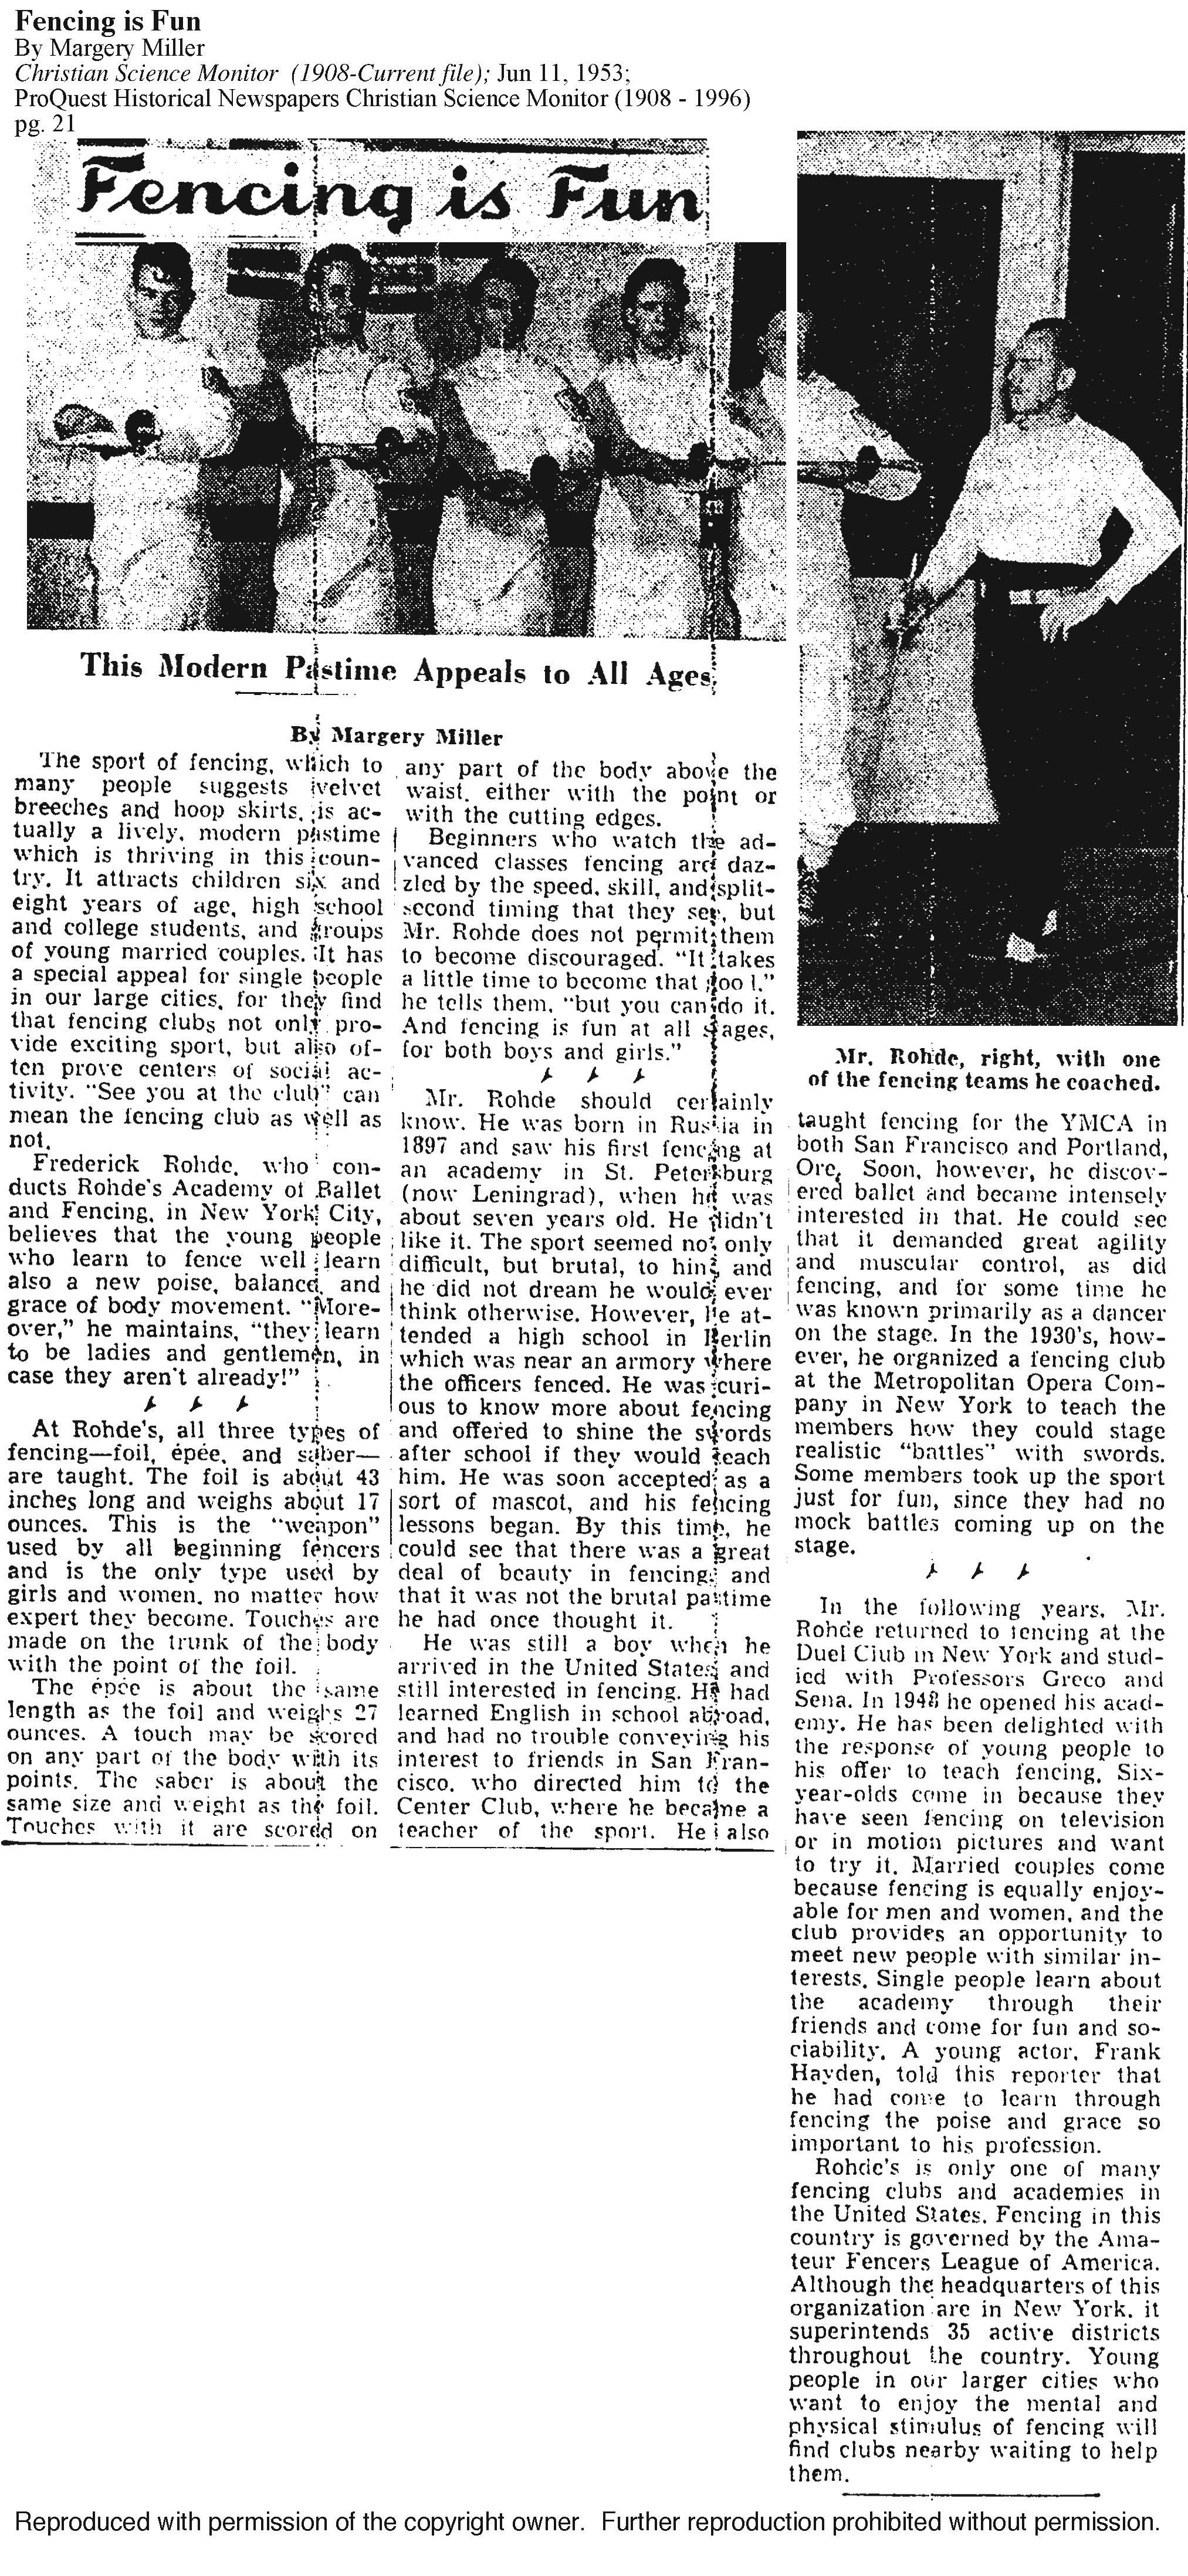 1953 Article about Maître Frederick Rohde's. Words, Word